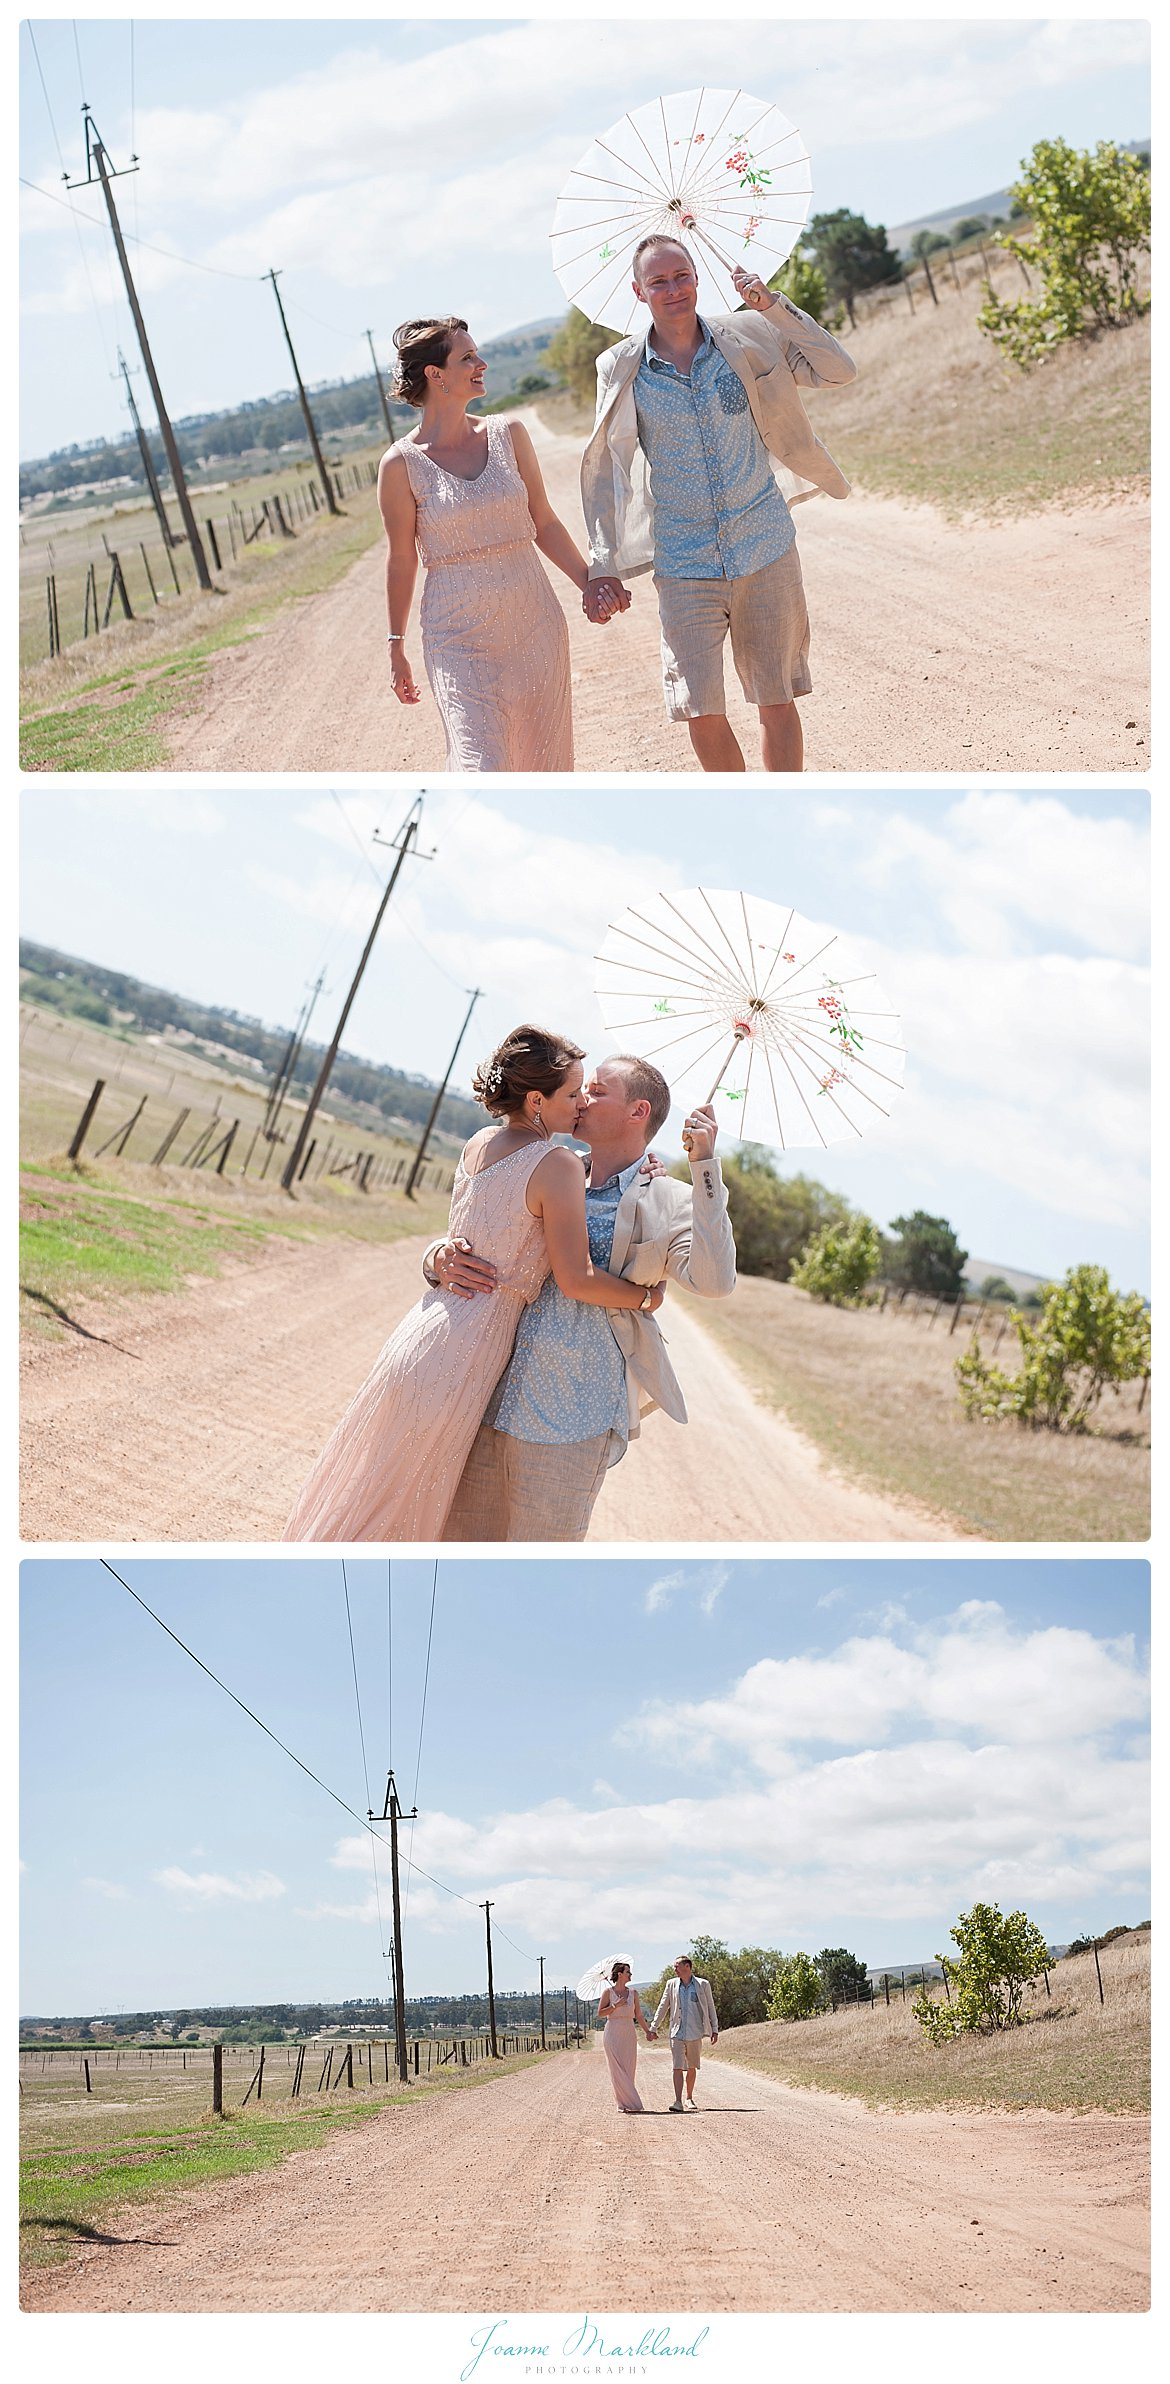 Grootepost-wedding-photography-joanne-markland-038